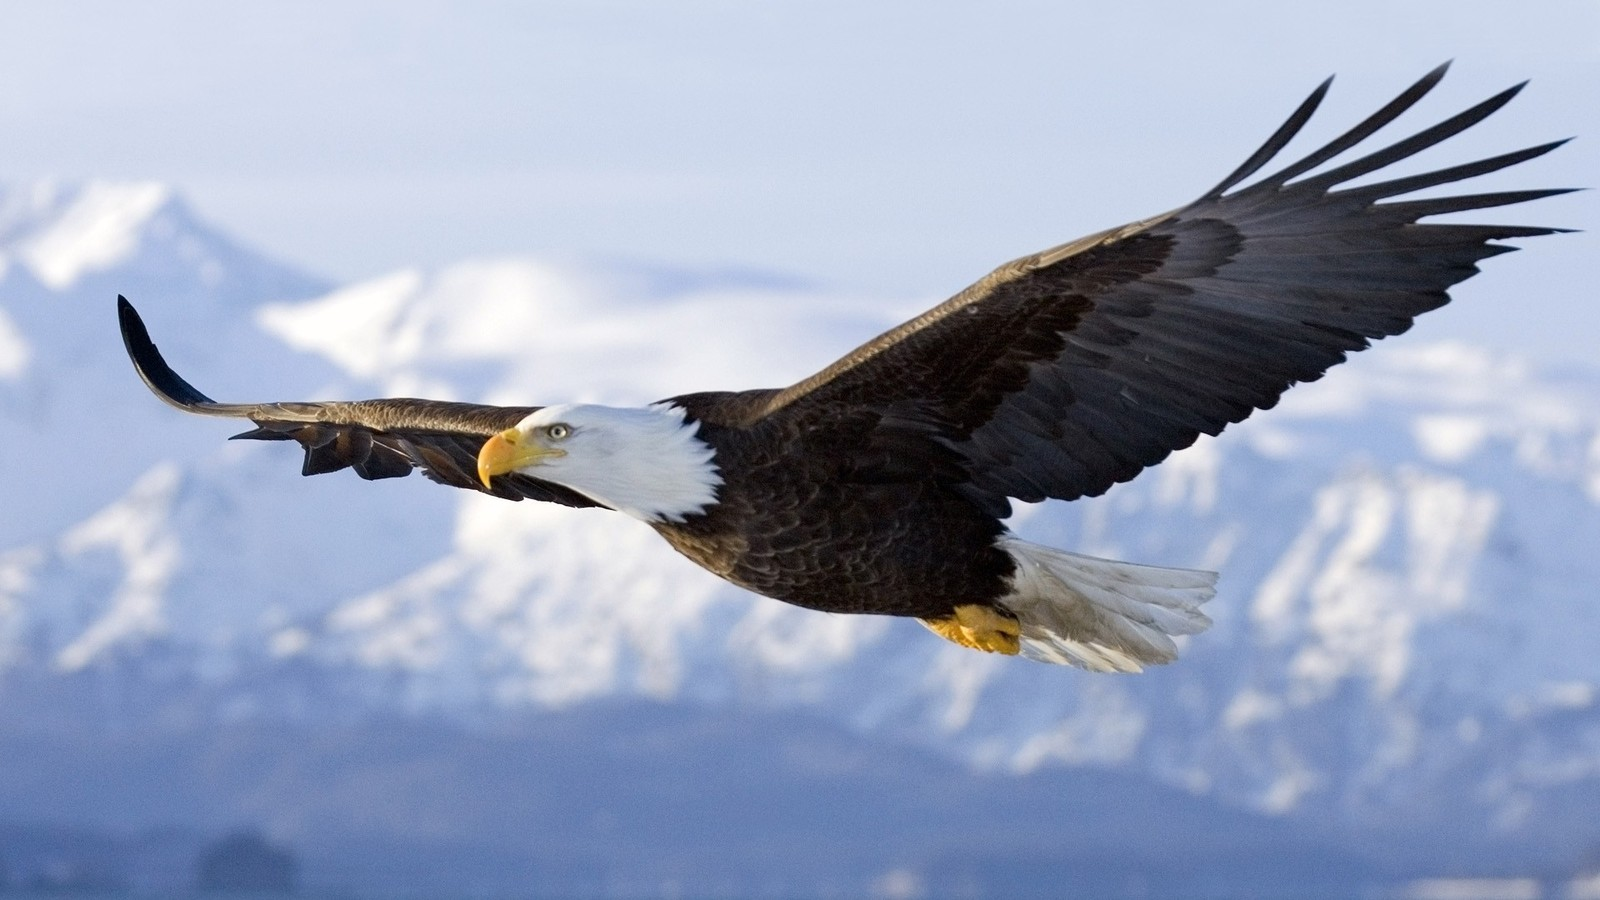 Floating Eagle Open Wings HD Wallpaper HD Nature Wallpapers 1600x900